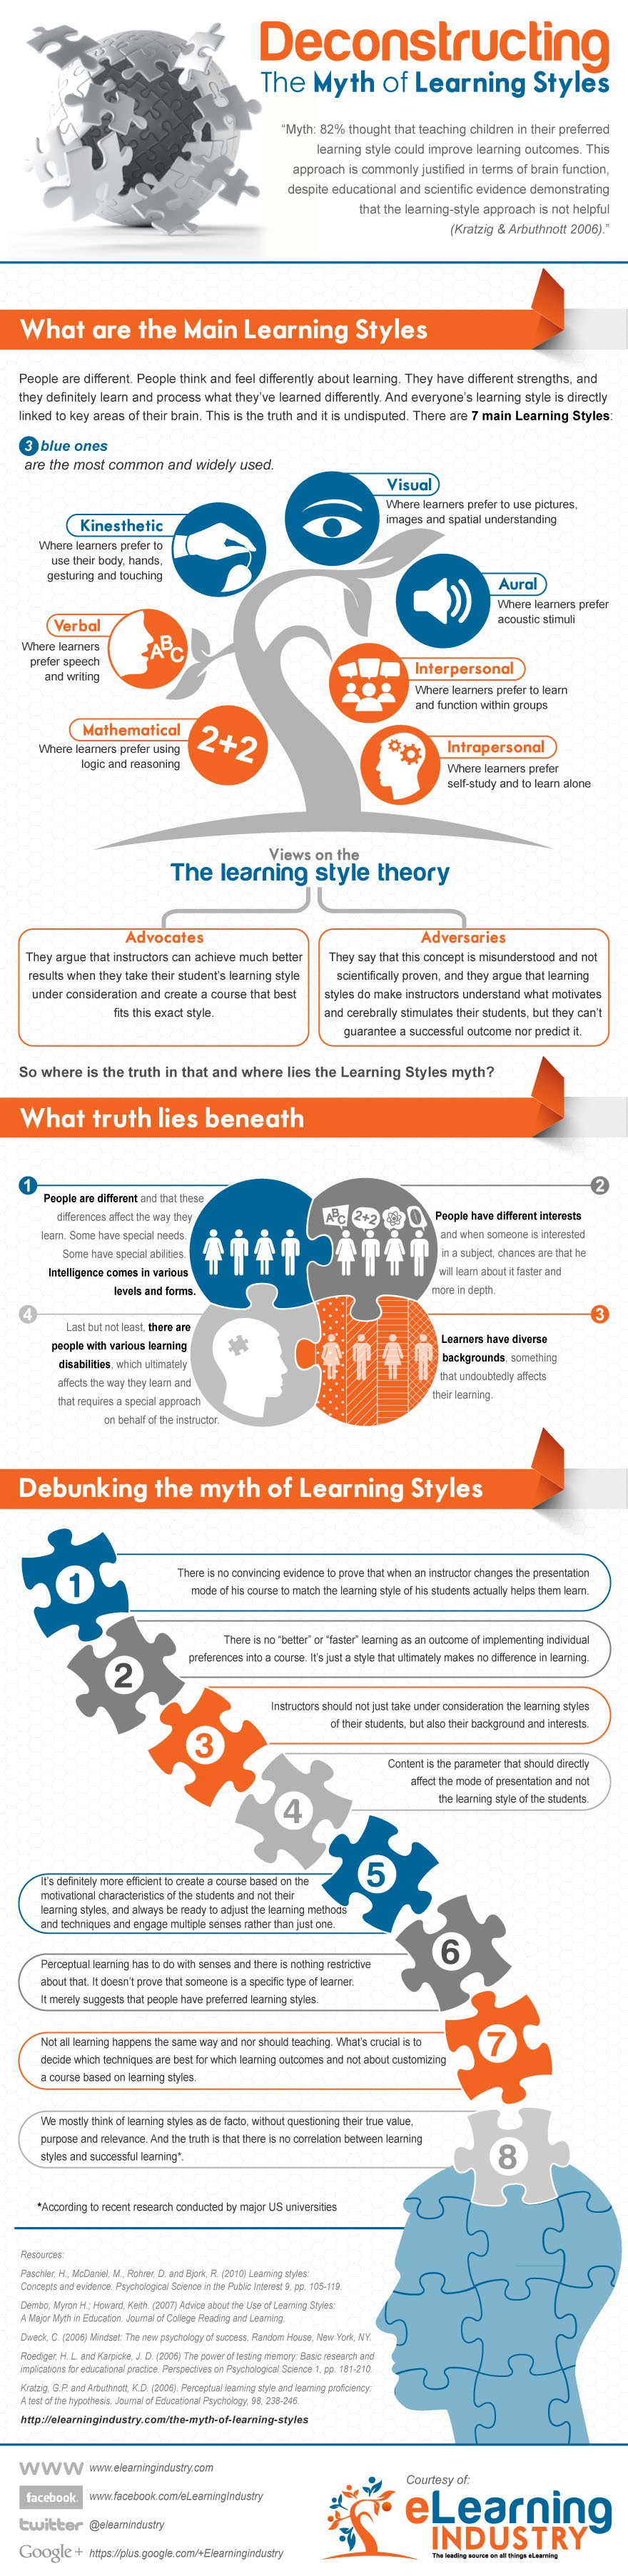 The Myth of Learning Styles Infographic (c) eLearning Industry